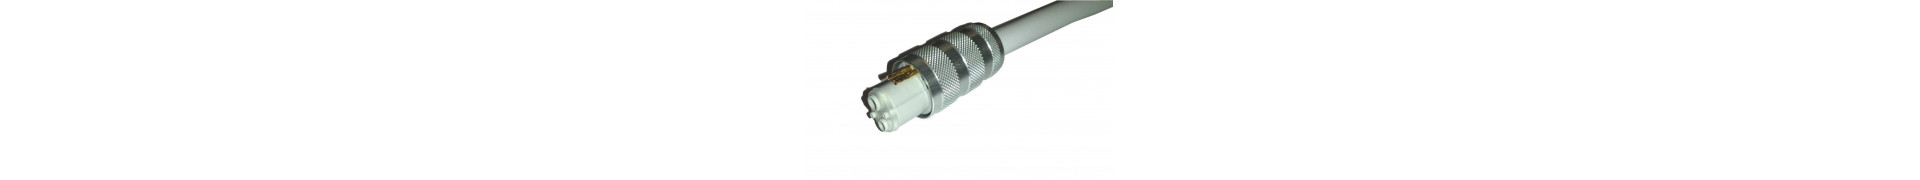 Drive Air s.a s. - Hoses suitable for Planmeca dental units